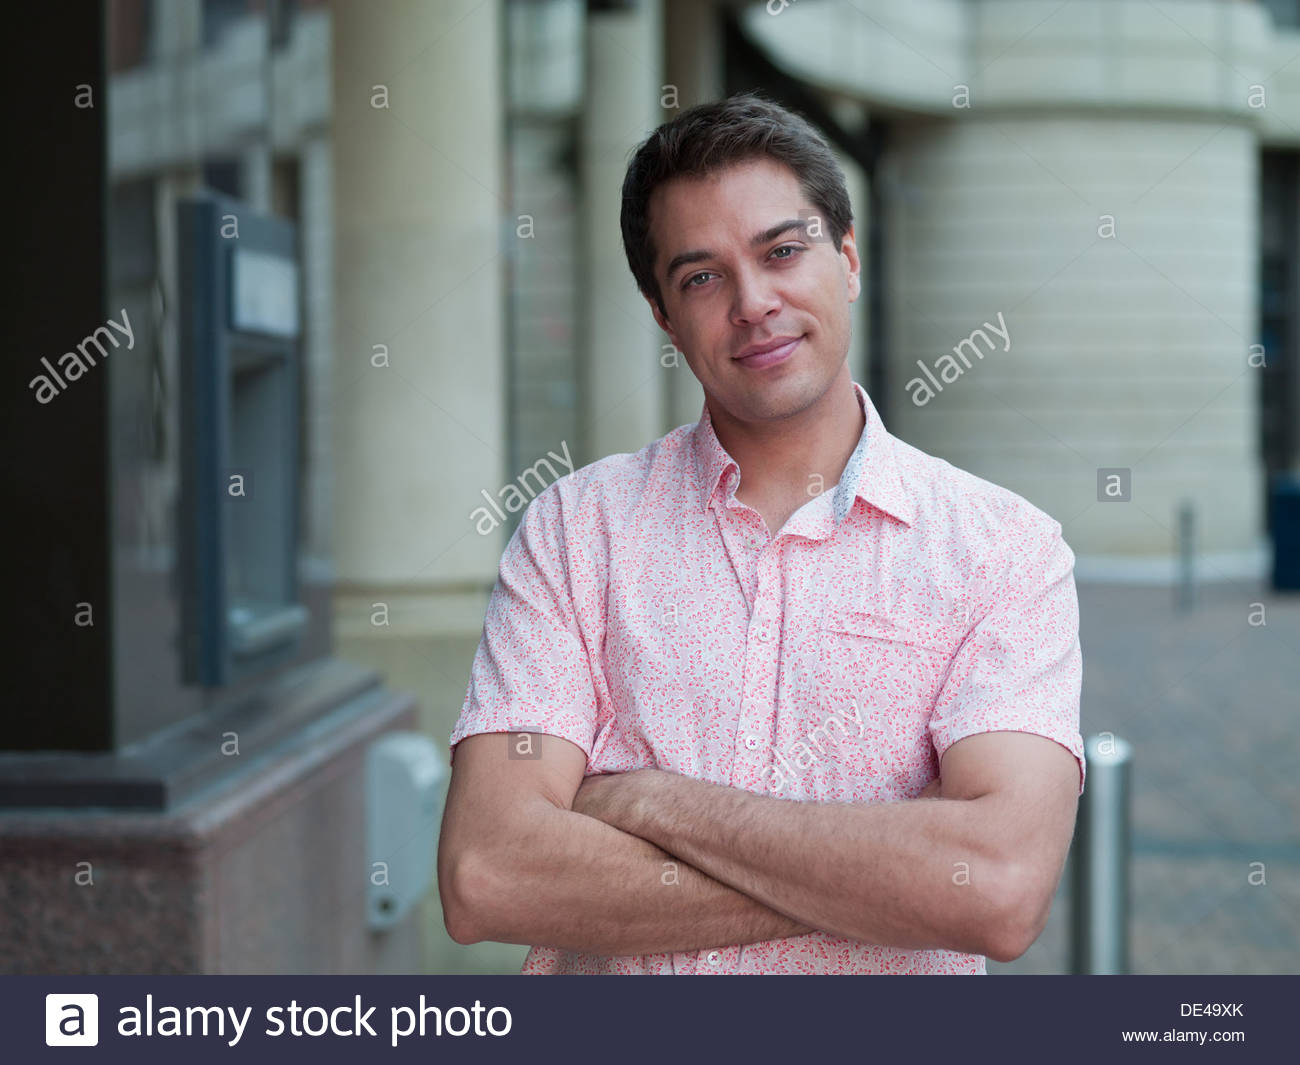 Smiling man with arms crossed near ATM machine - Stock Image